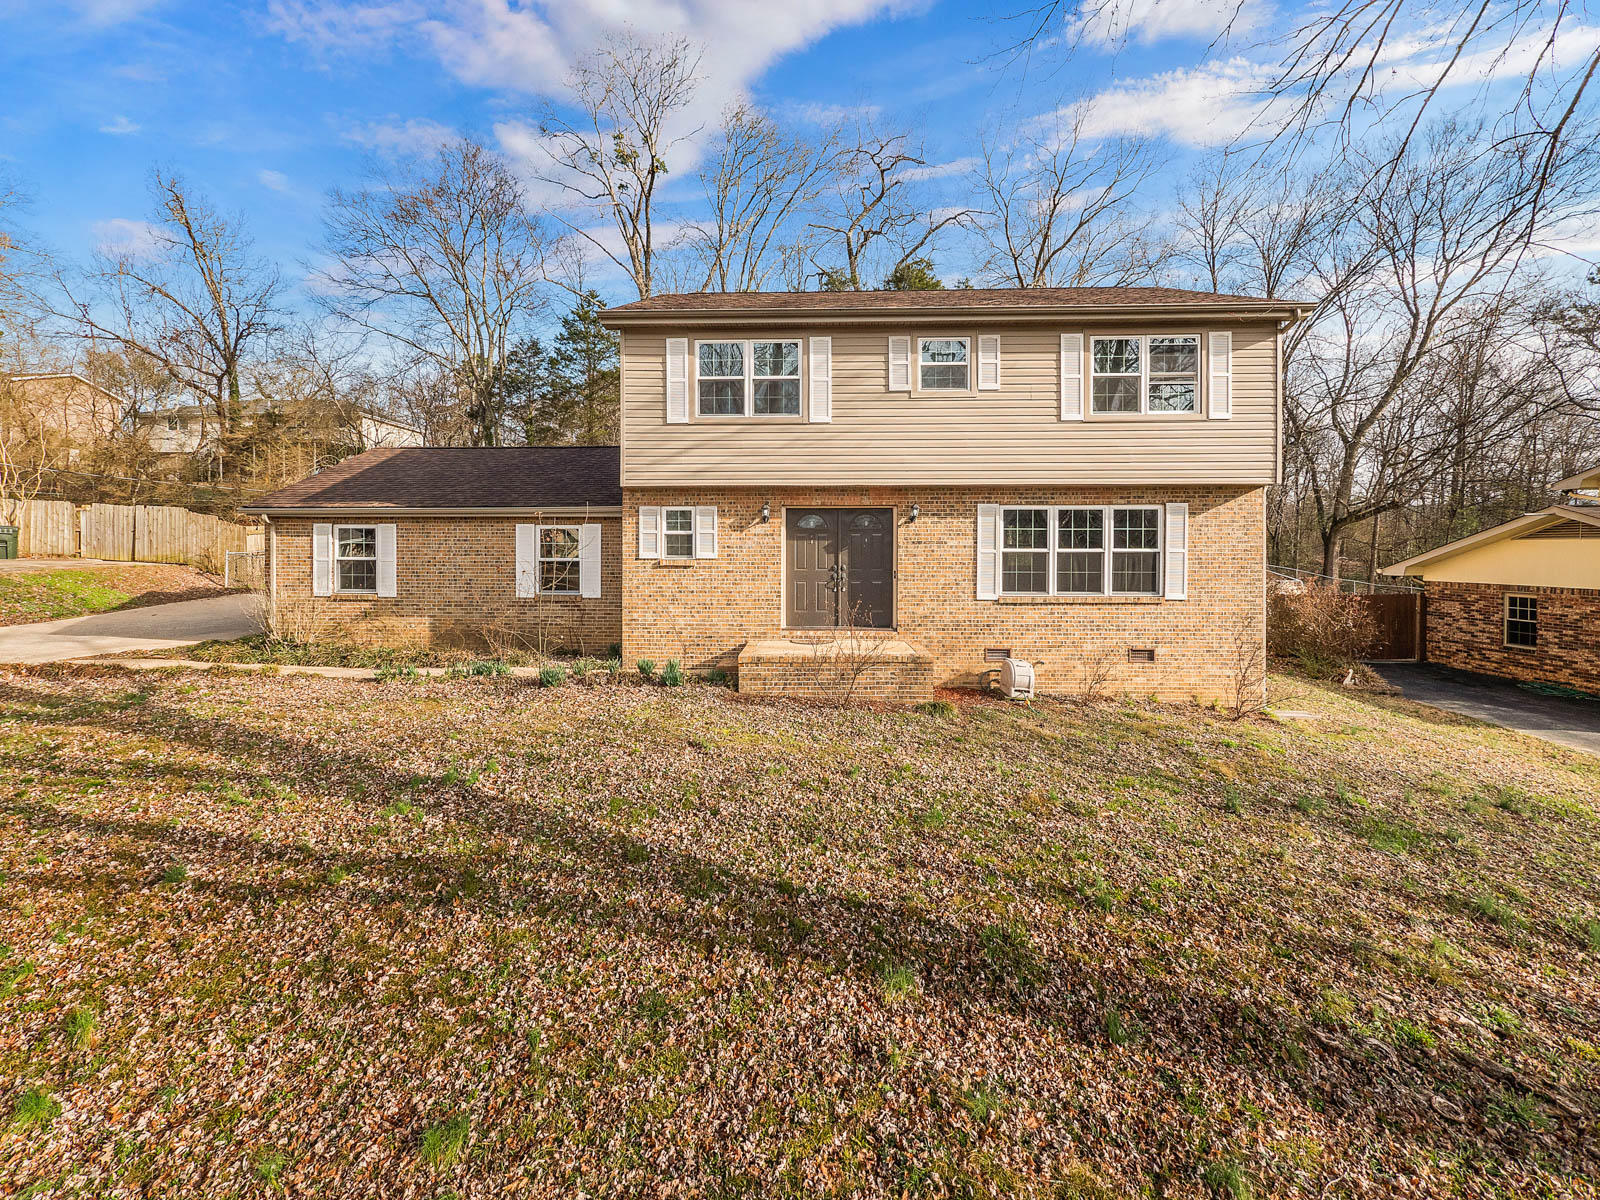 9308 Charbar Cir, Chattanooga, TN 37421